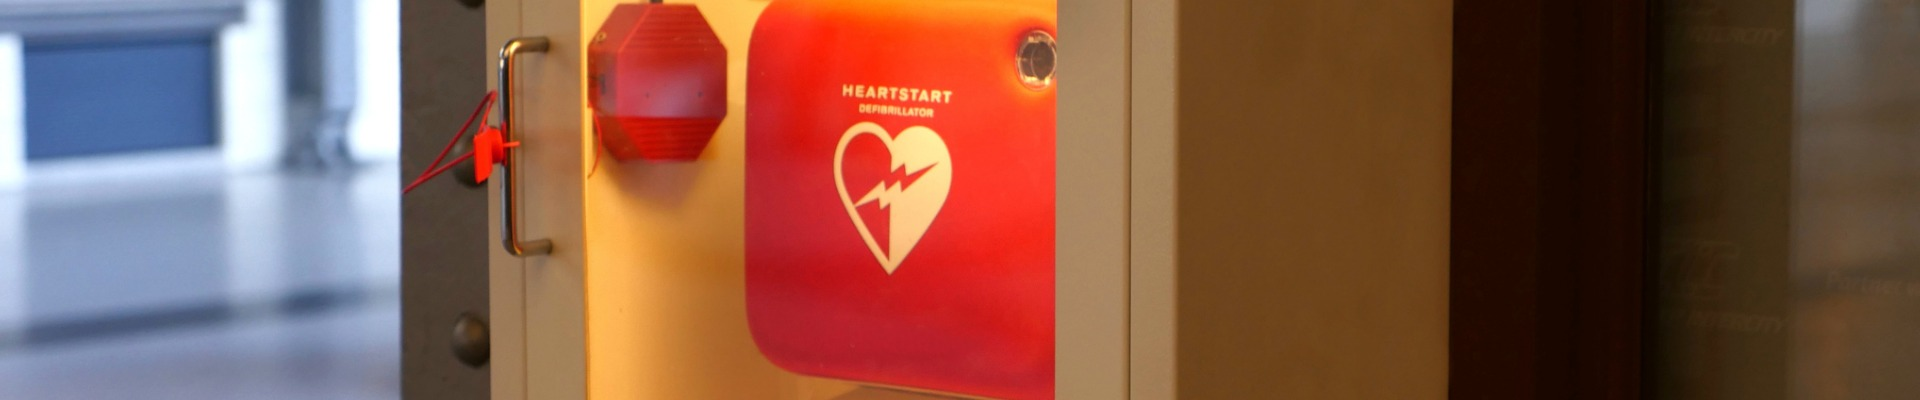 Hero Image for AEDs